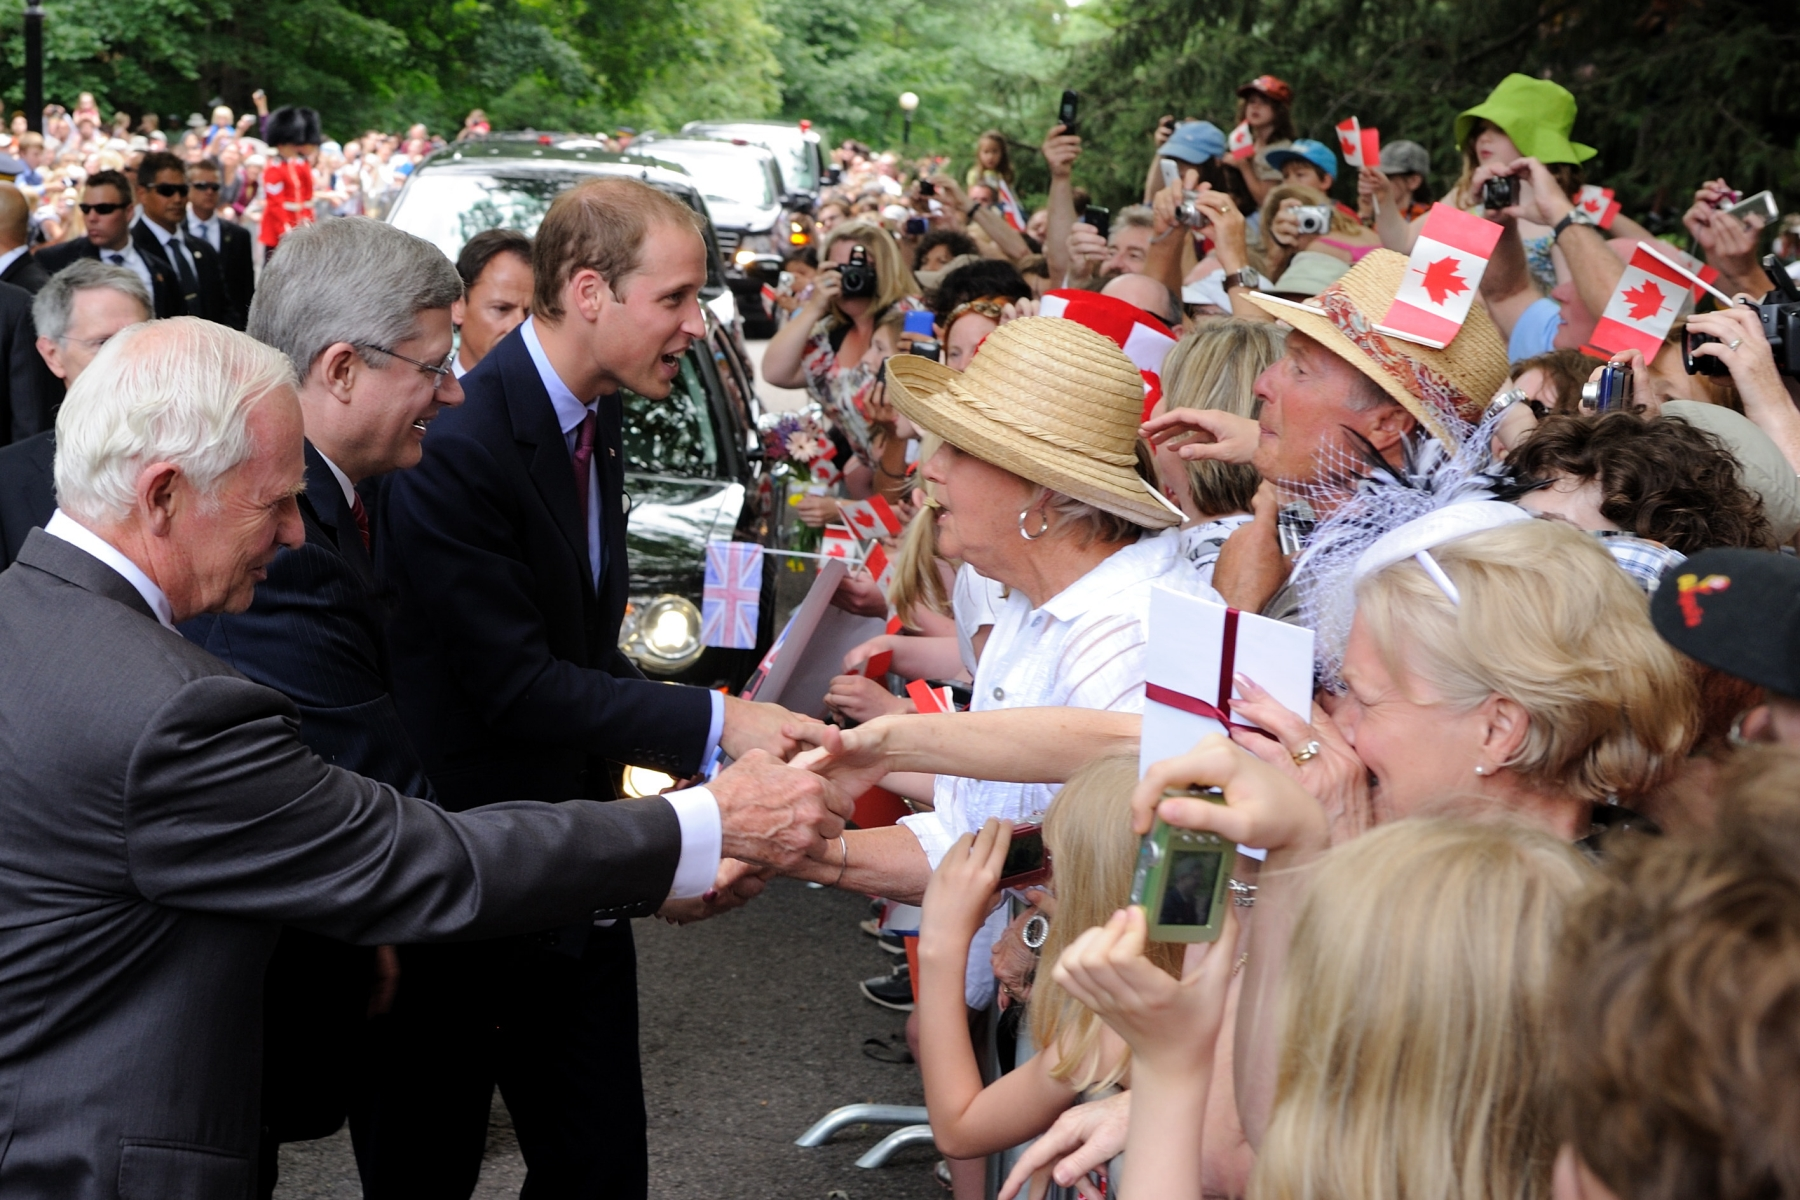 More than 6,000 Canadians offered a warm welcome to Their Royal Highnesses. The Prime Minister the Right Honourable Stephen Harper and his wife Mrs. Laureen Harper were also on site.